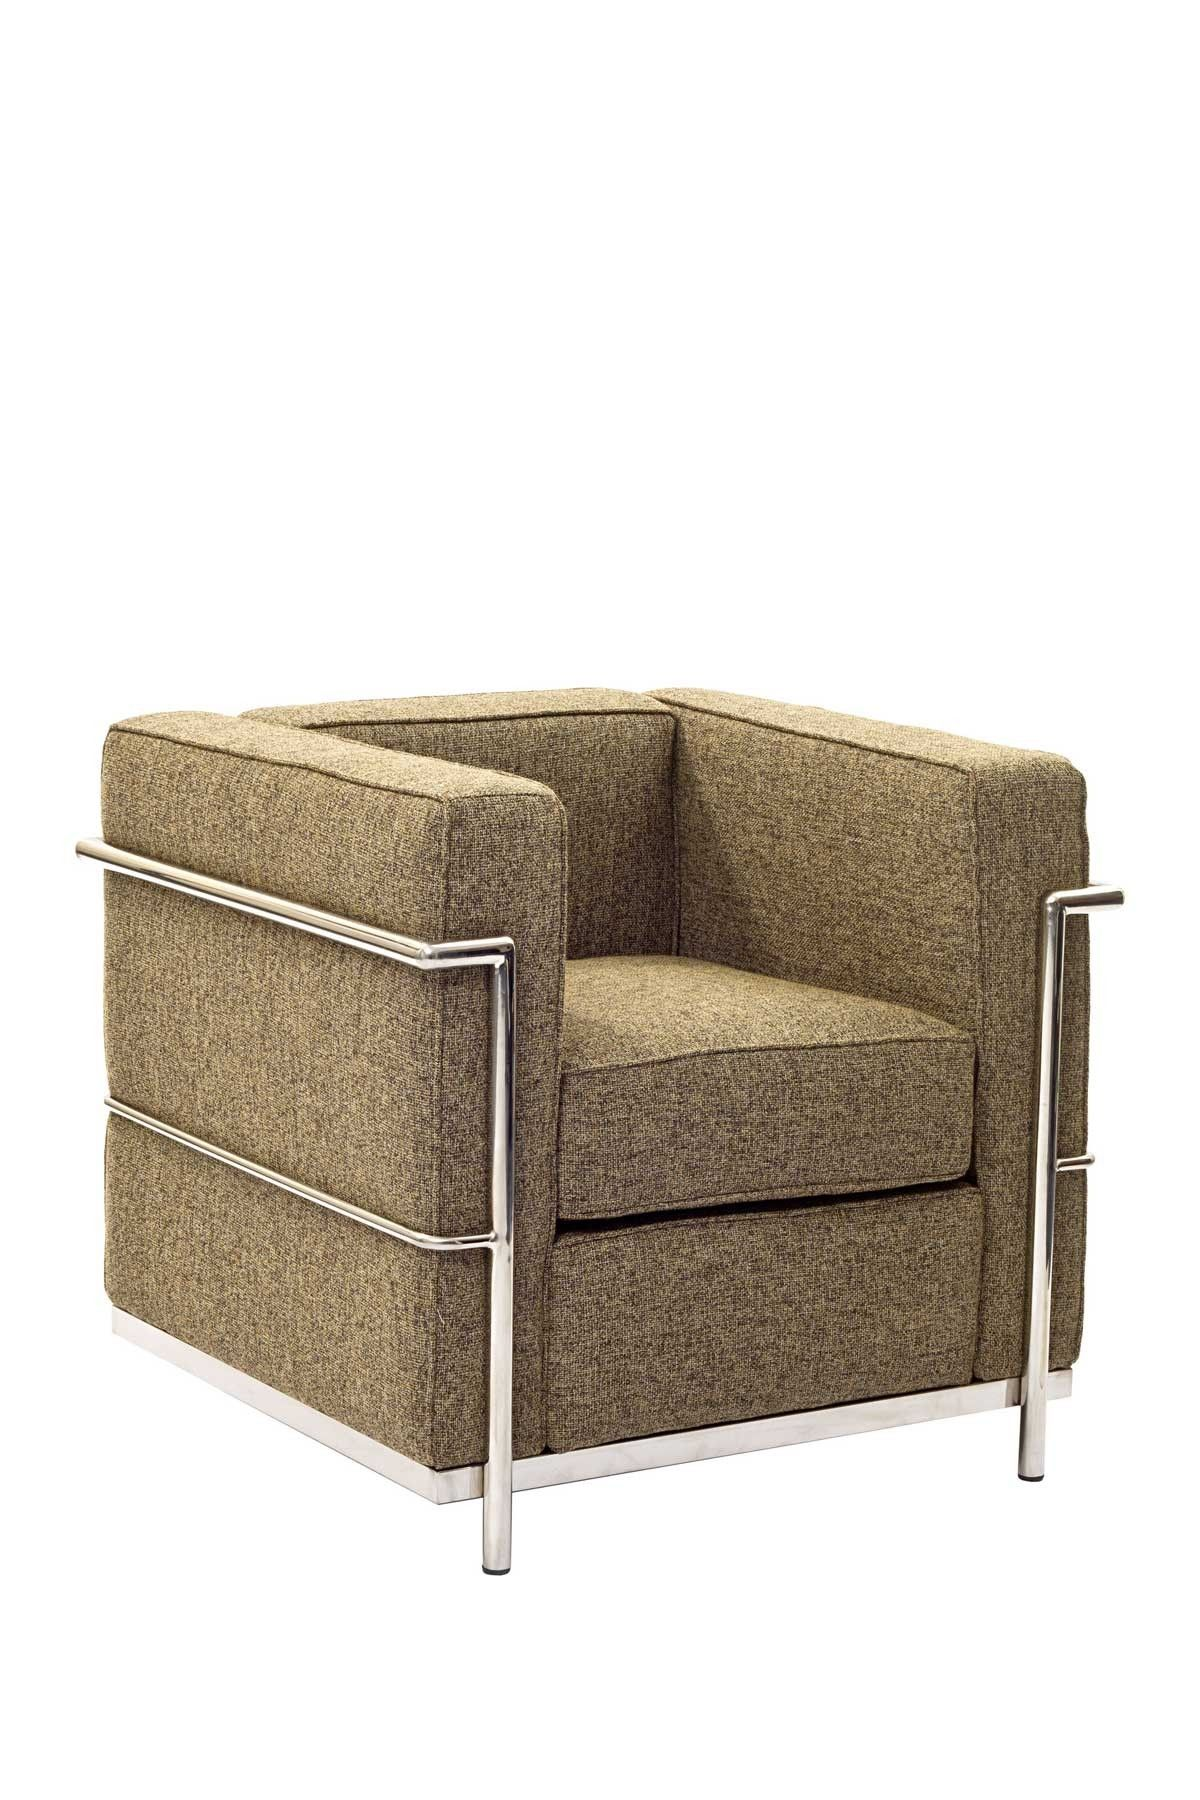 knock off modern furniture. I Know It\u0027s Not An Original, But Some Of The Knock-off Finish Options. Modern FurnitureHome Knock Off Furniture O